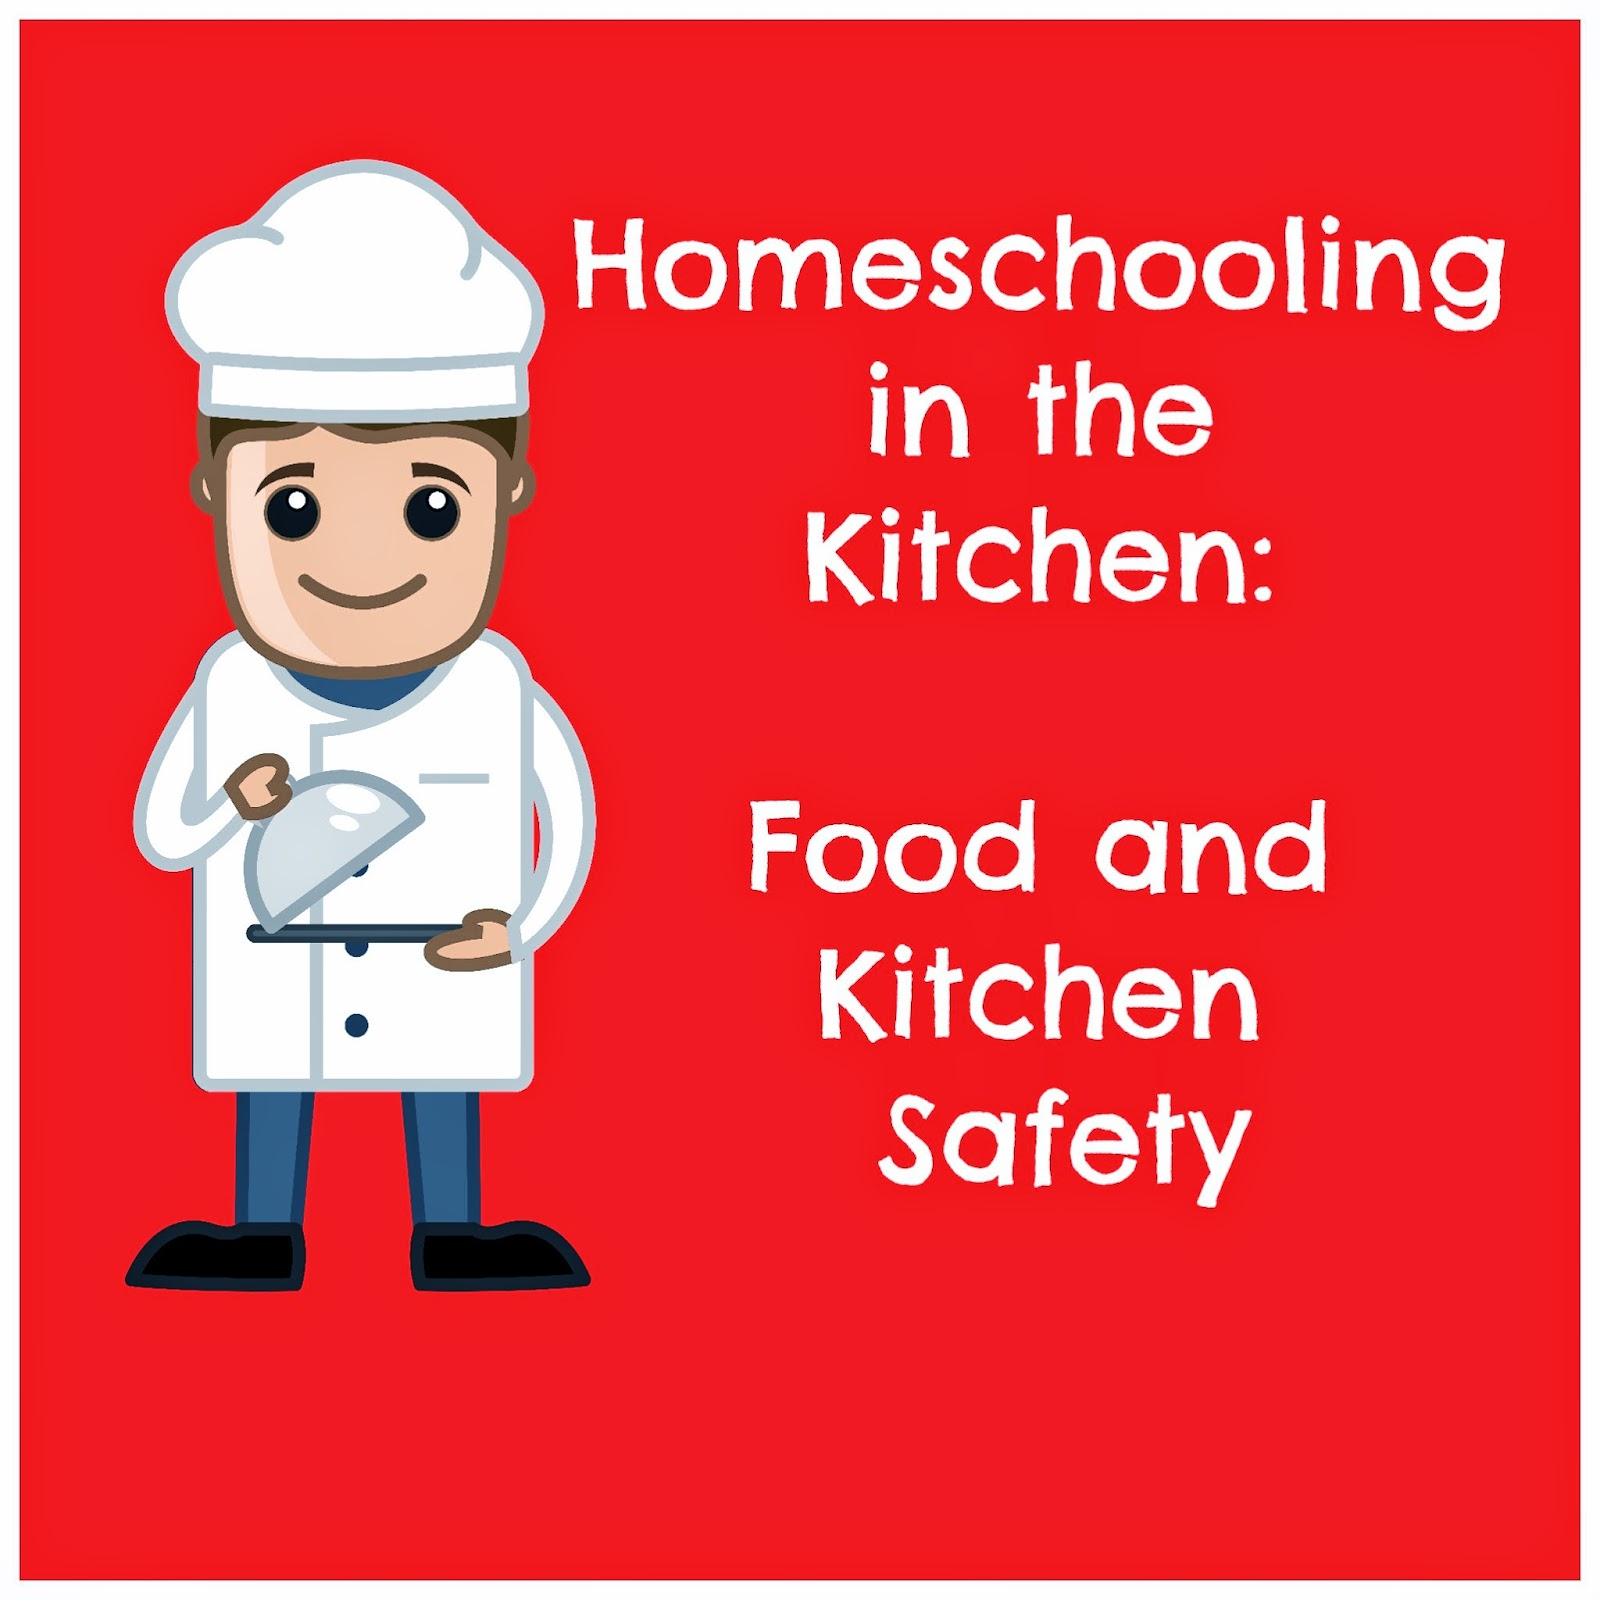 Adventures With Jude Food And Kitchen Safety Homeschooling In The Kitchen